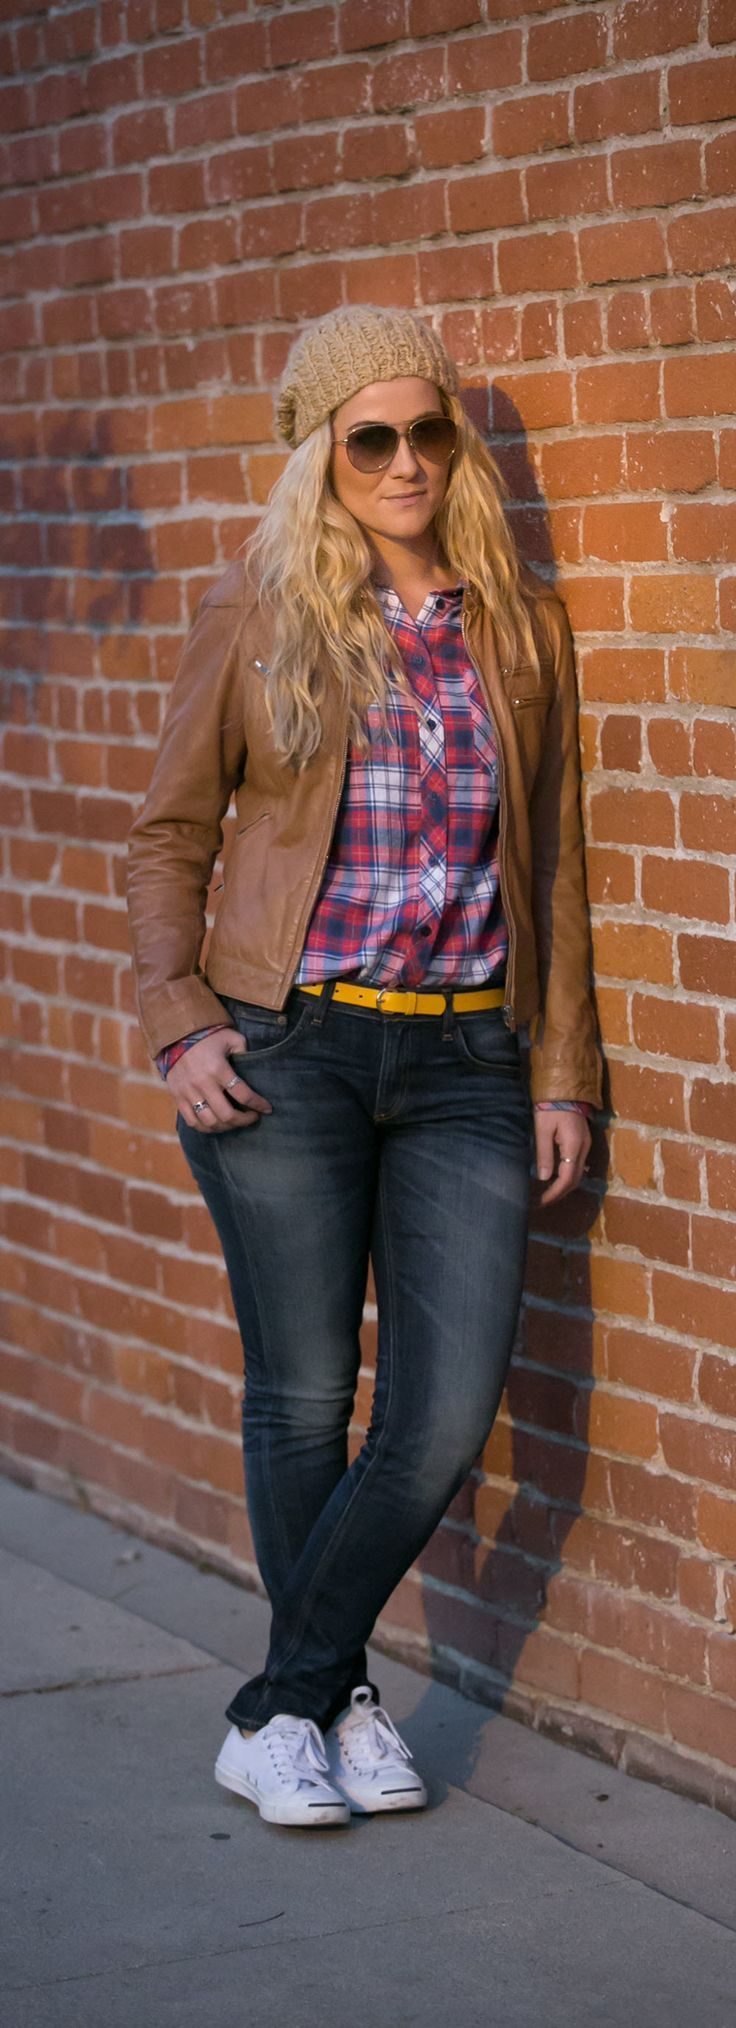 Plaid Shirt and Leather Jacket Outfit perfect for fall and winter. Cute tan beanie.